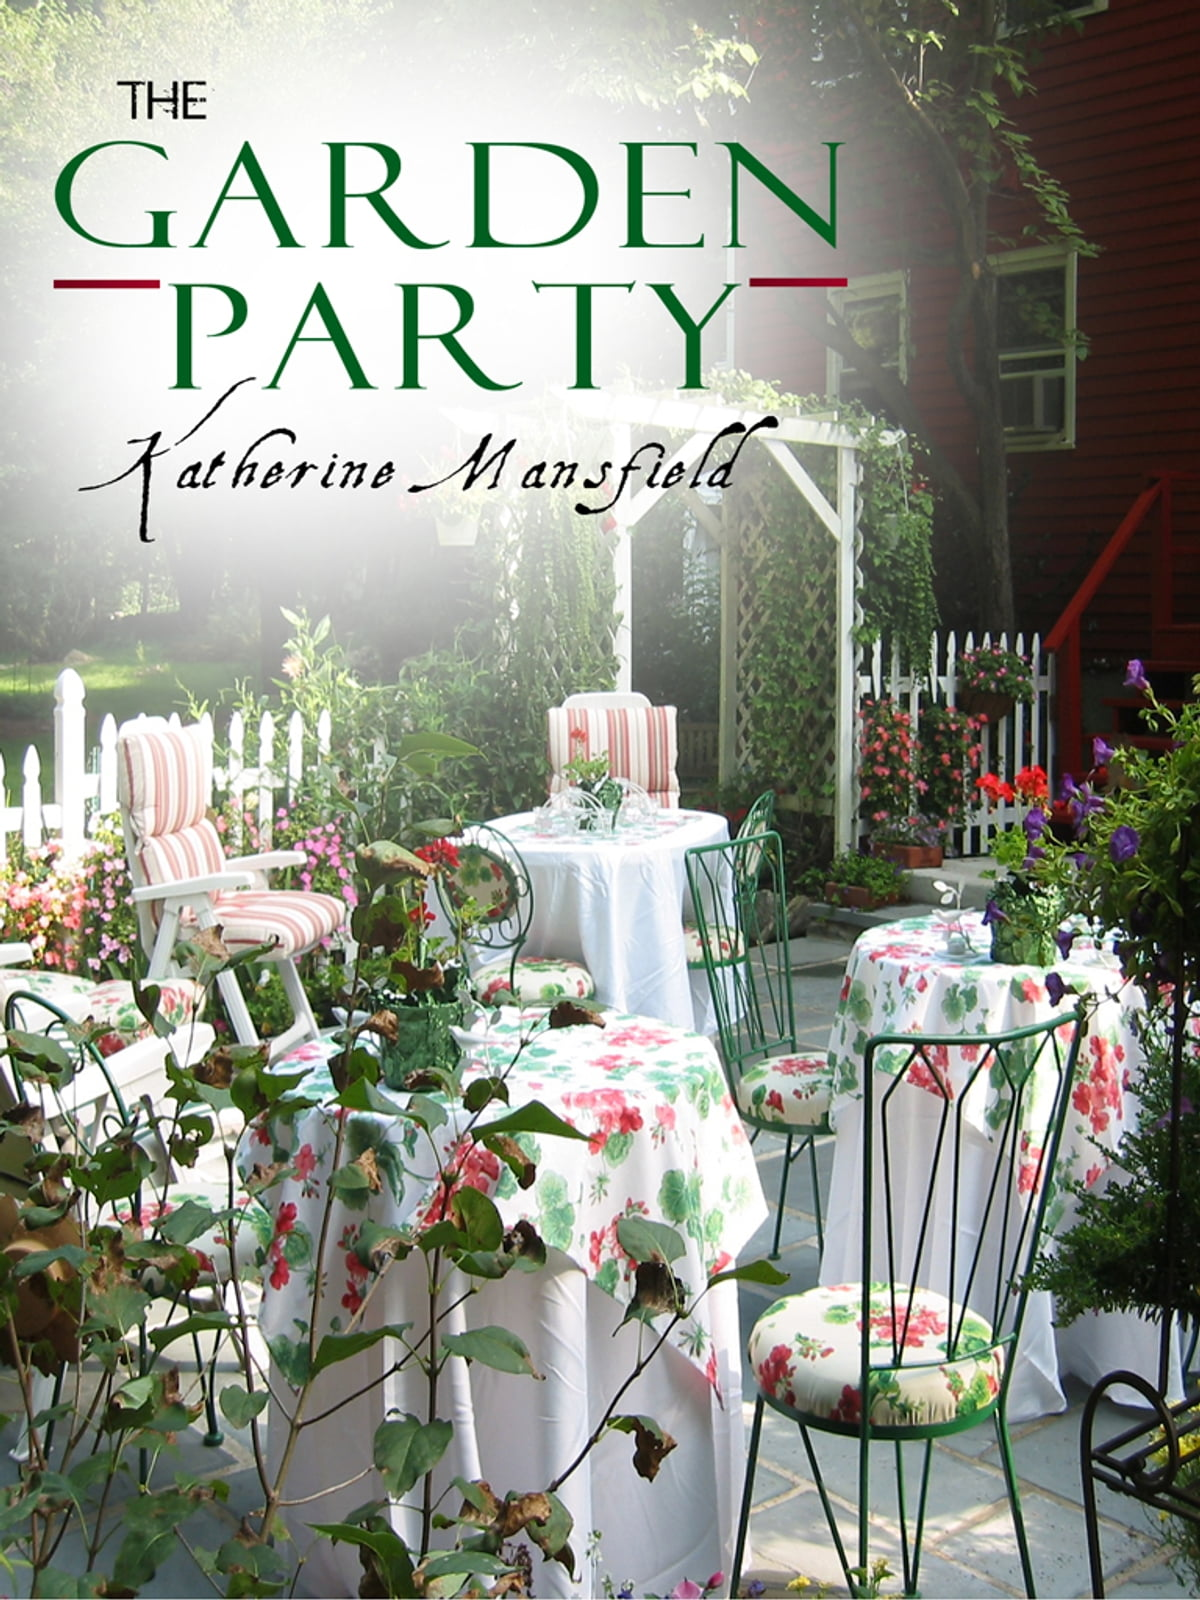 The Garden Party eBook by Katherine Mansfield spring-themed novels